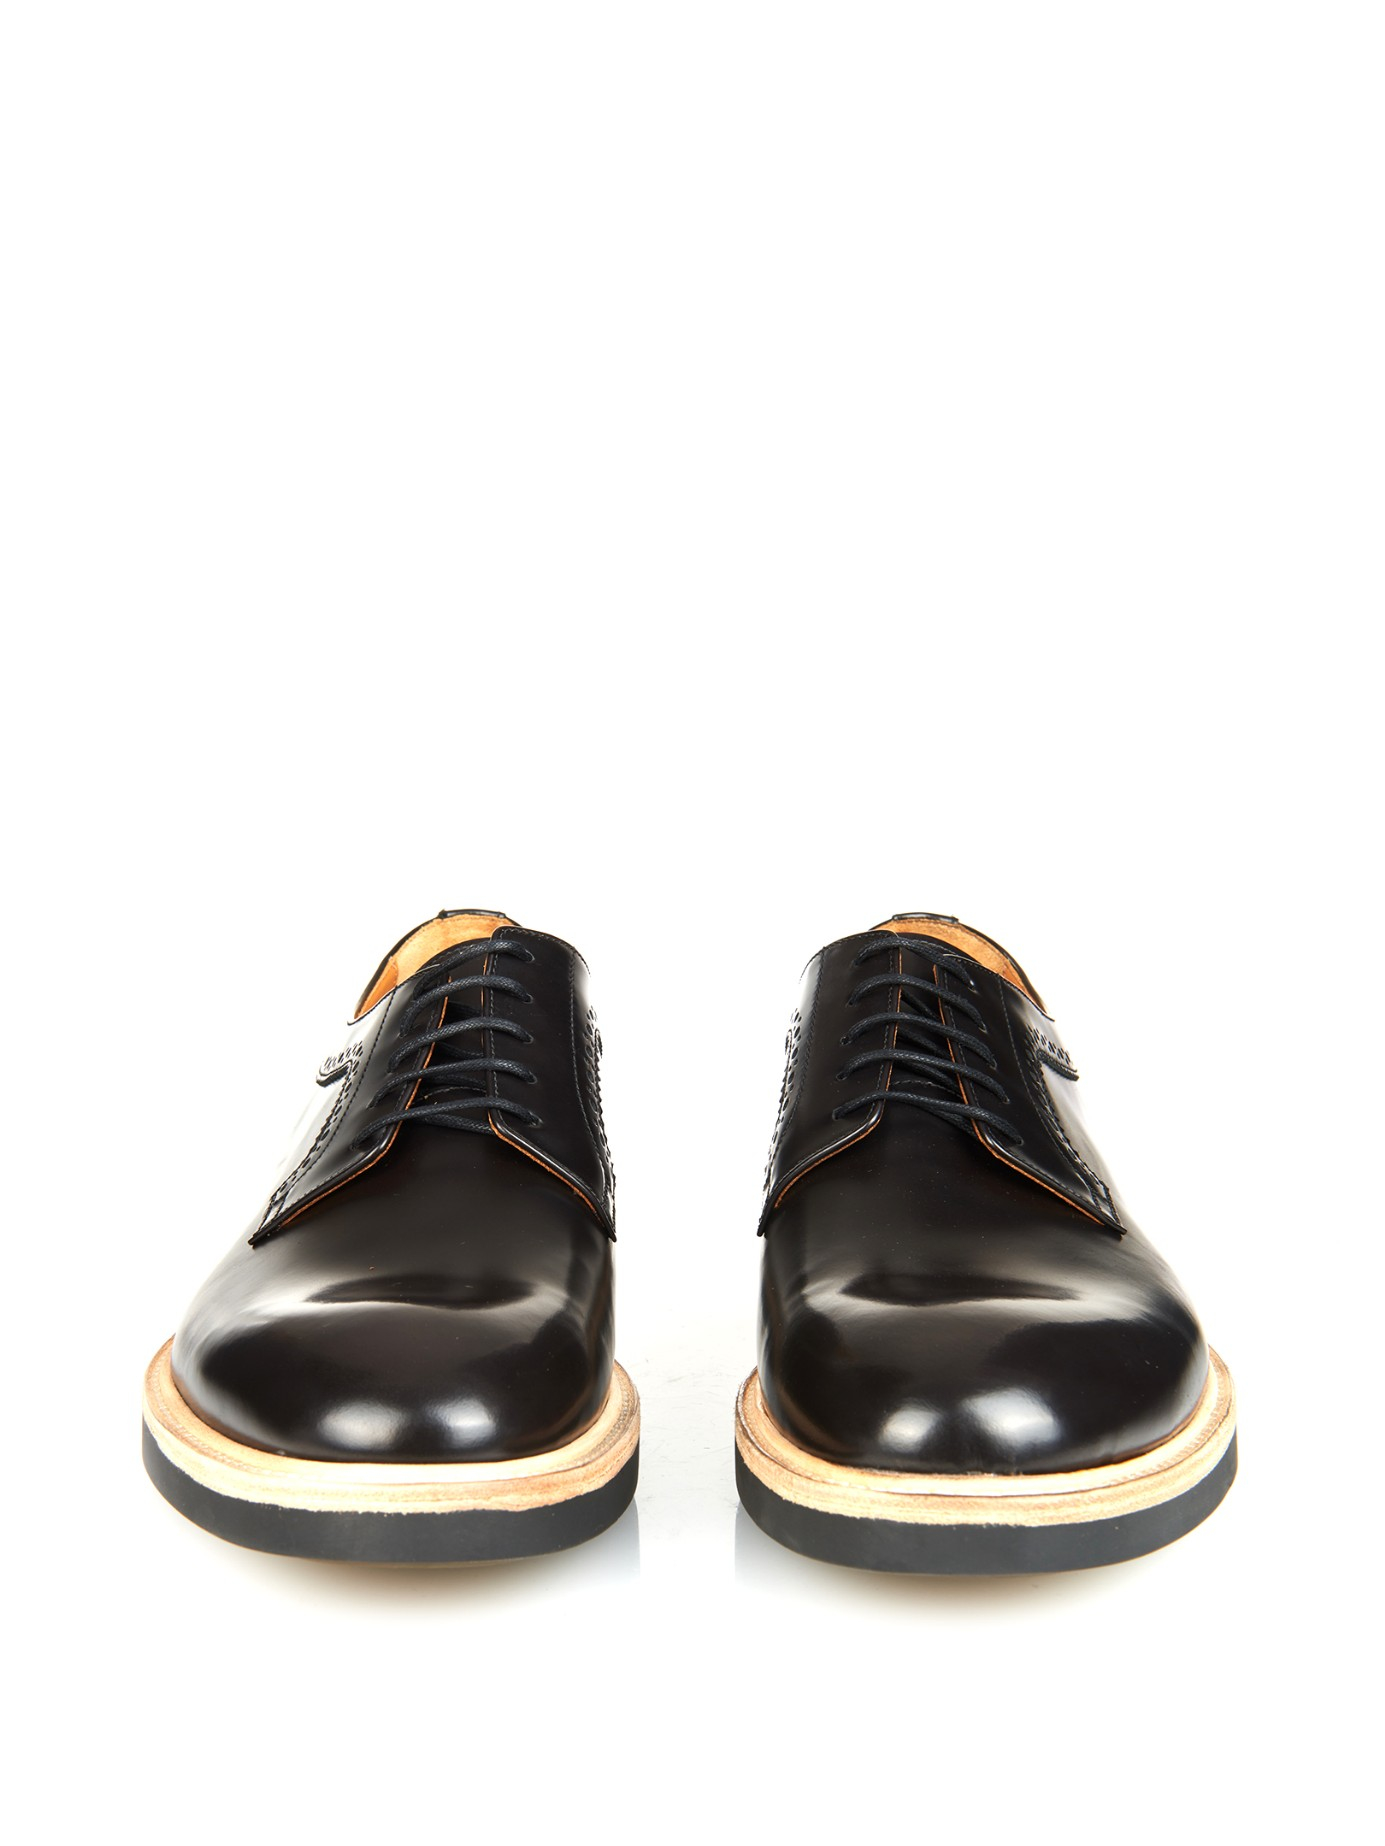 Buffed Smooth Leather Shoes